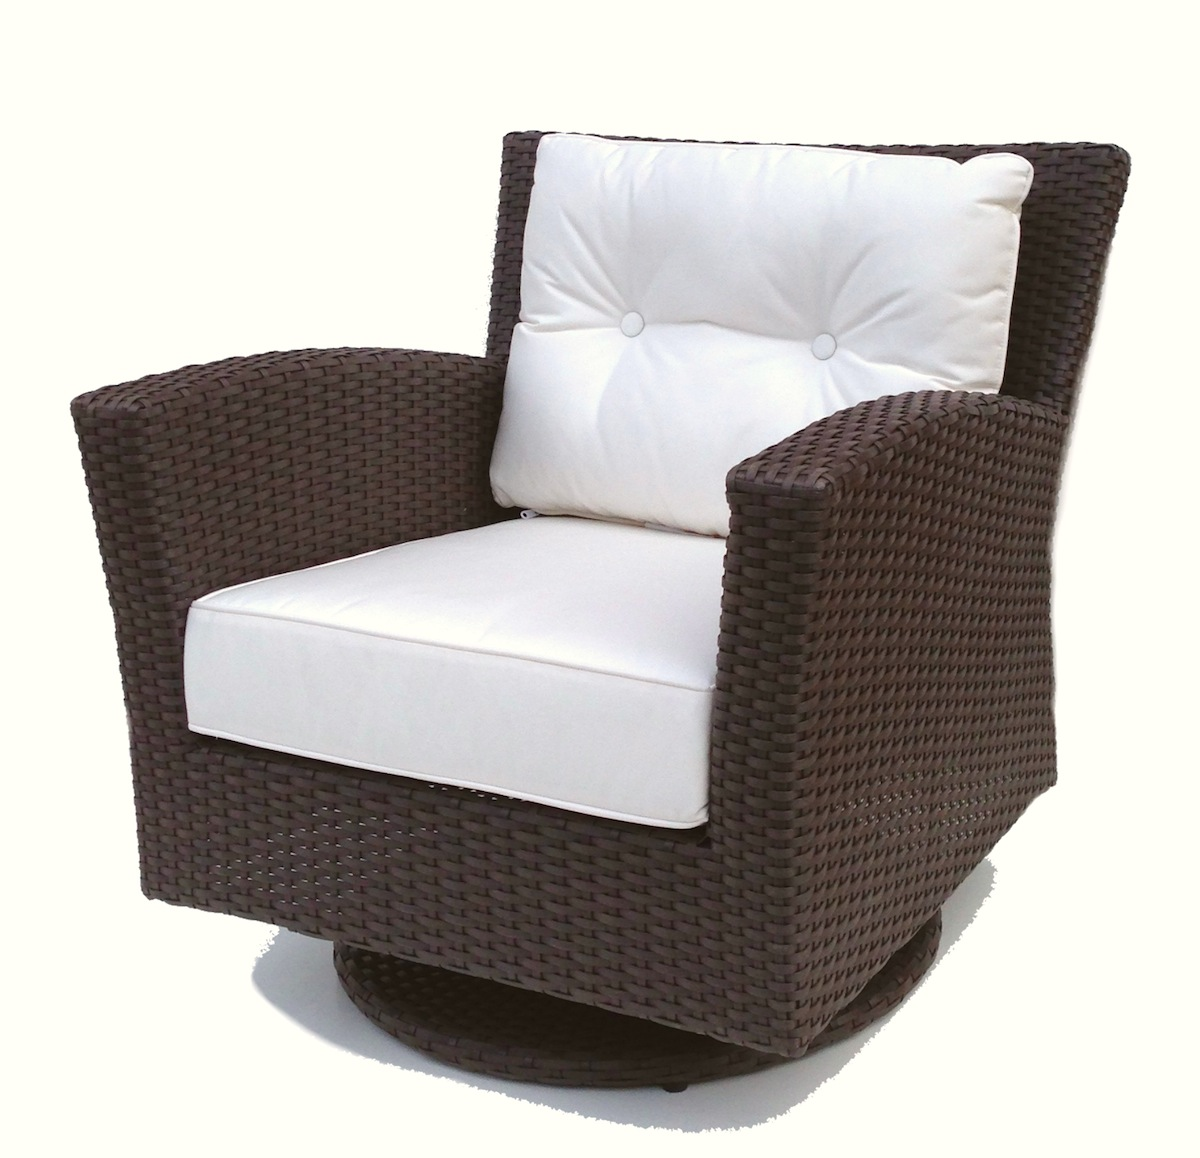 Outdoor Swivel Rocking Chairs Outdoor Wicker Swivel Rocker Chair Sonoma